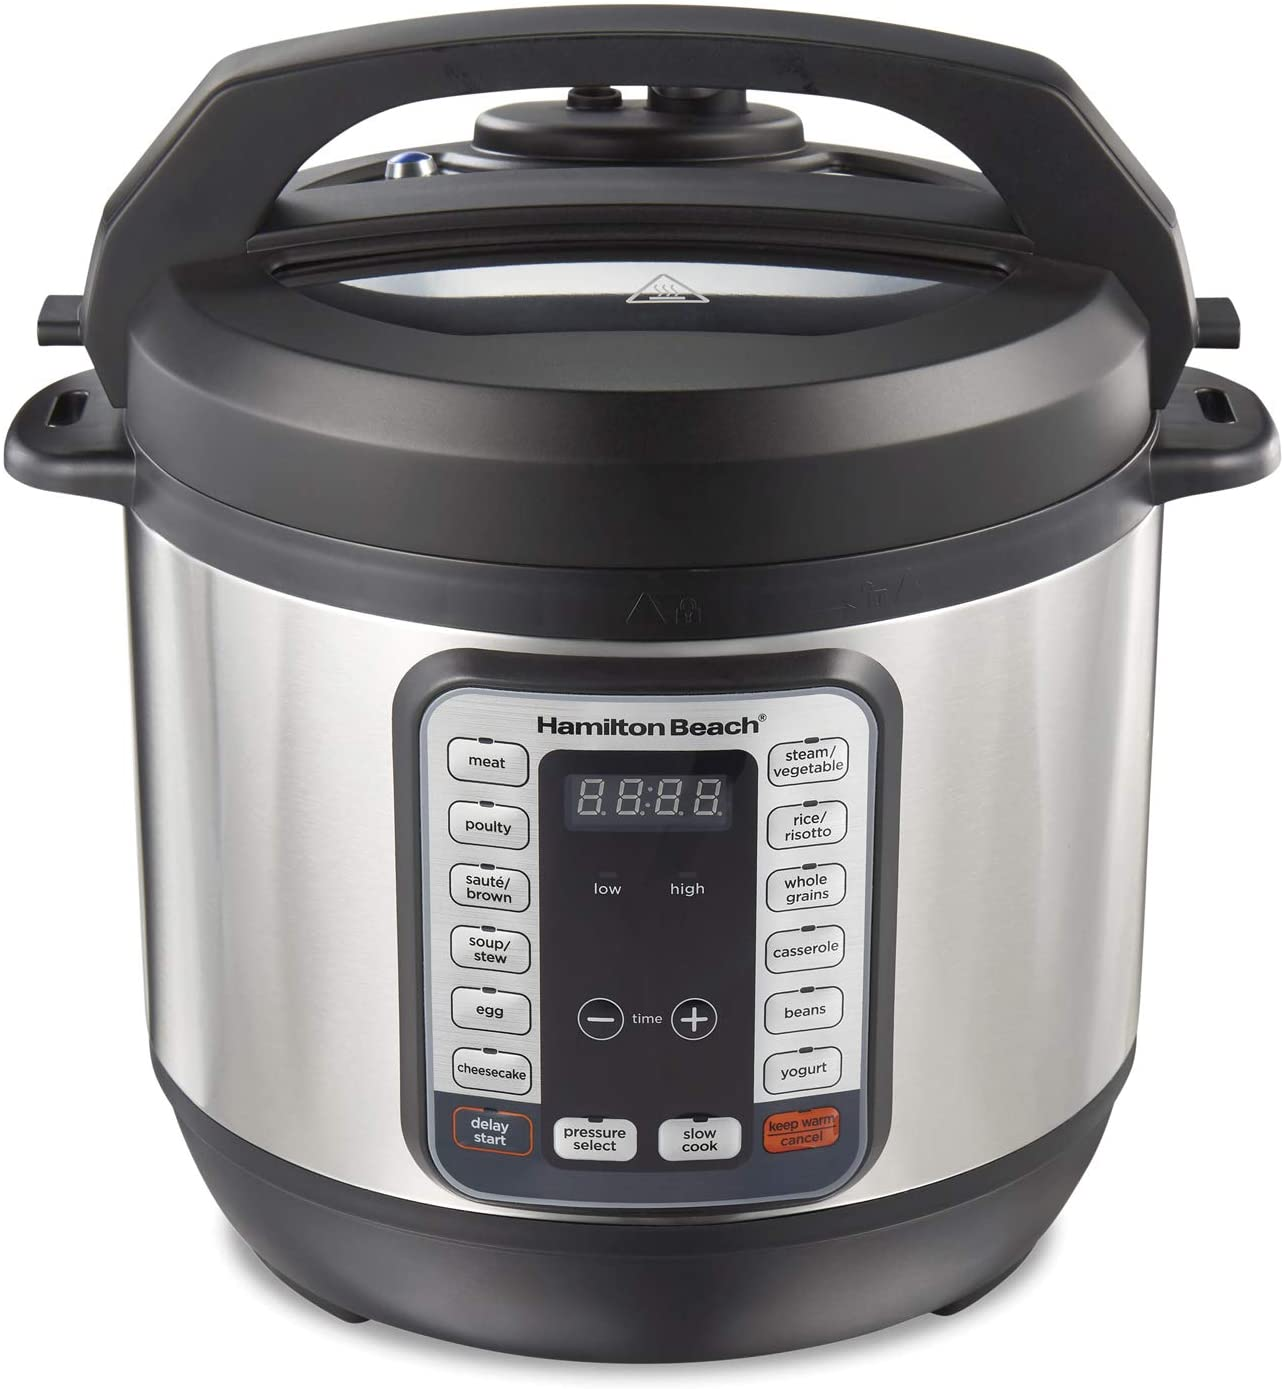 Hamilton Beach Technology, Stainless Steel (34508) 8q, 12-in-1 QuikCook Programmable Electric Pressure Cooker, Cook, Rice Steamer, Sauté, Egg and Yogurt Maker with True Slow